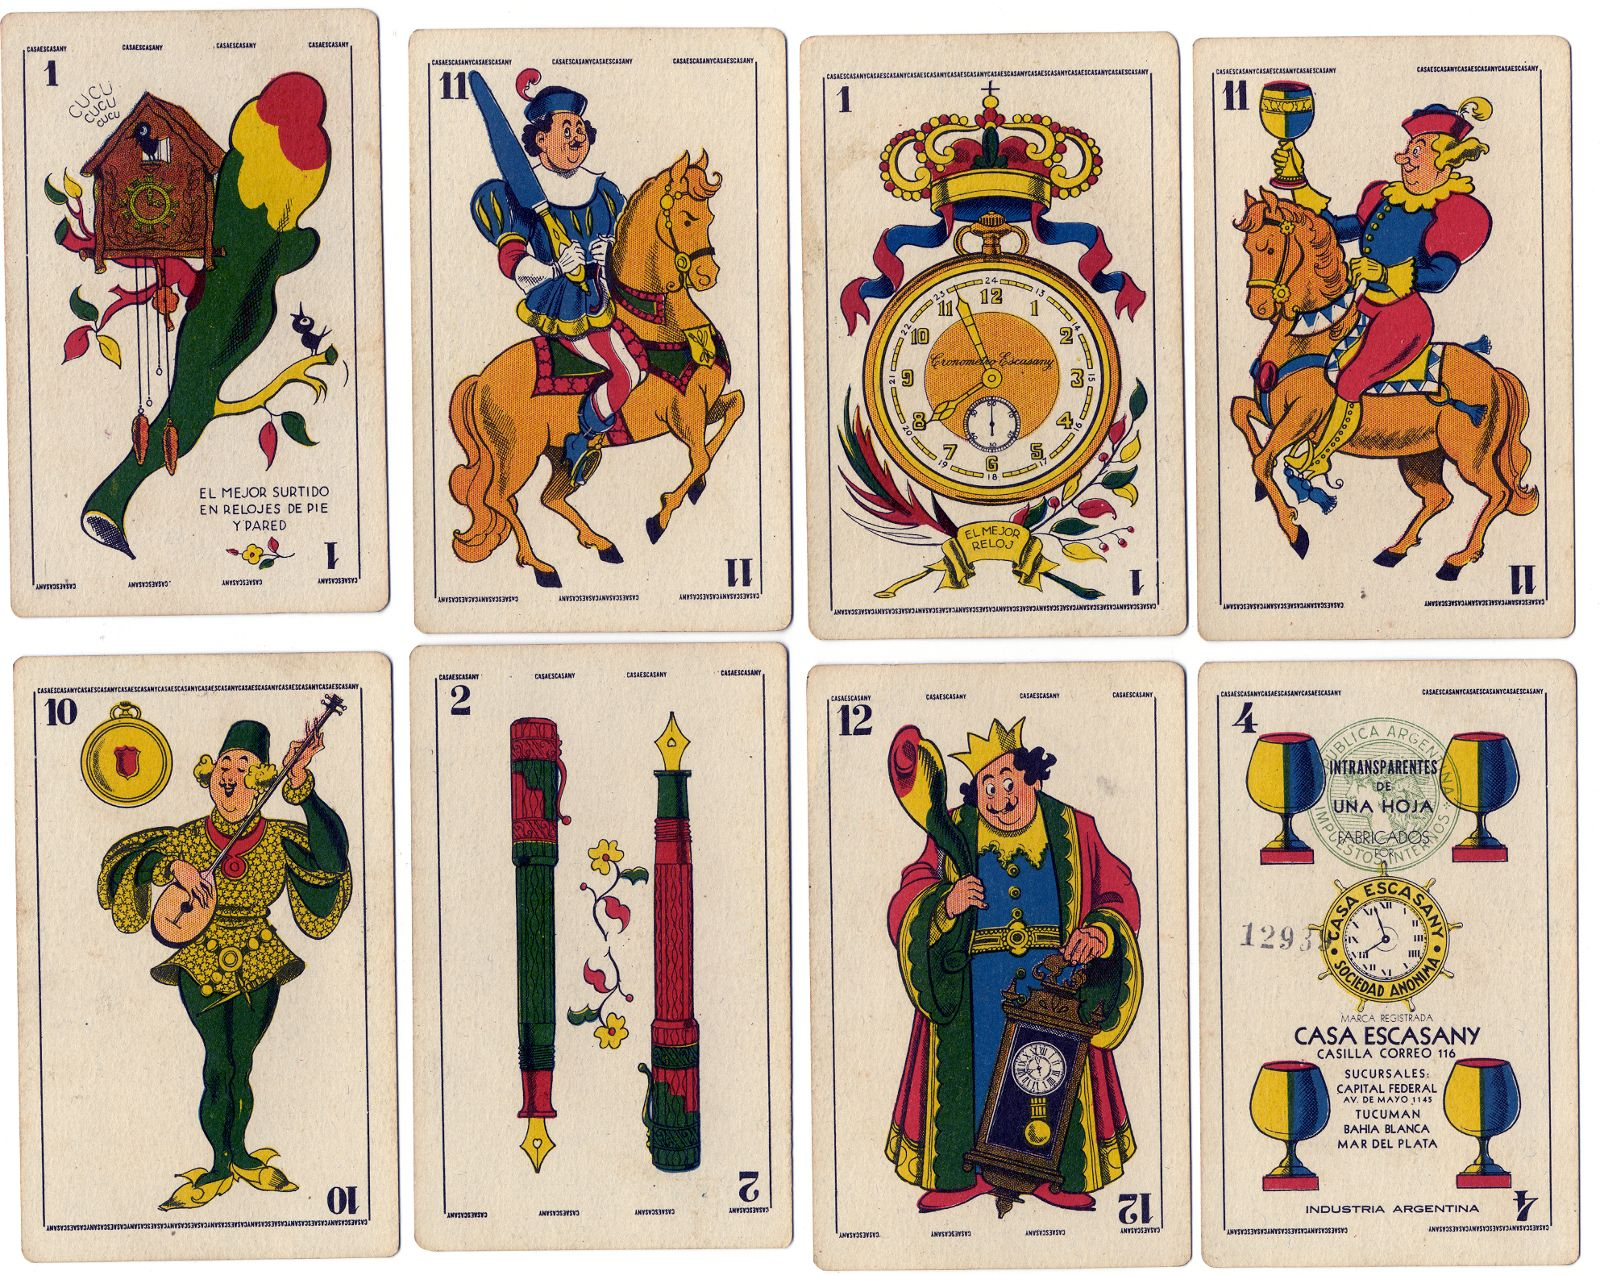 Naipes Casa Escasany ~ promotional playing cards from Argentina, 1930s